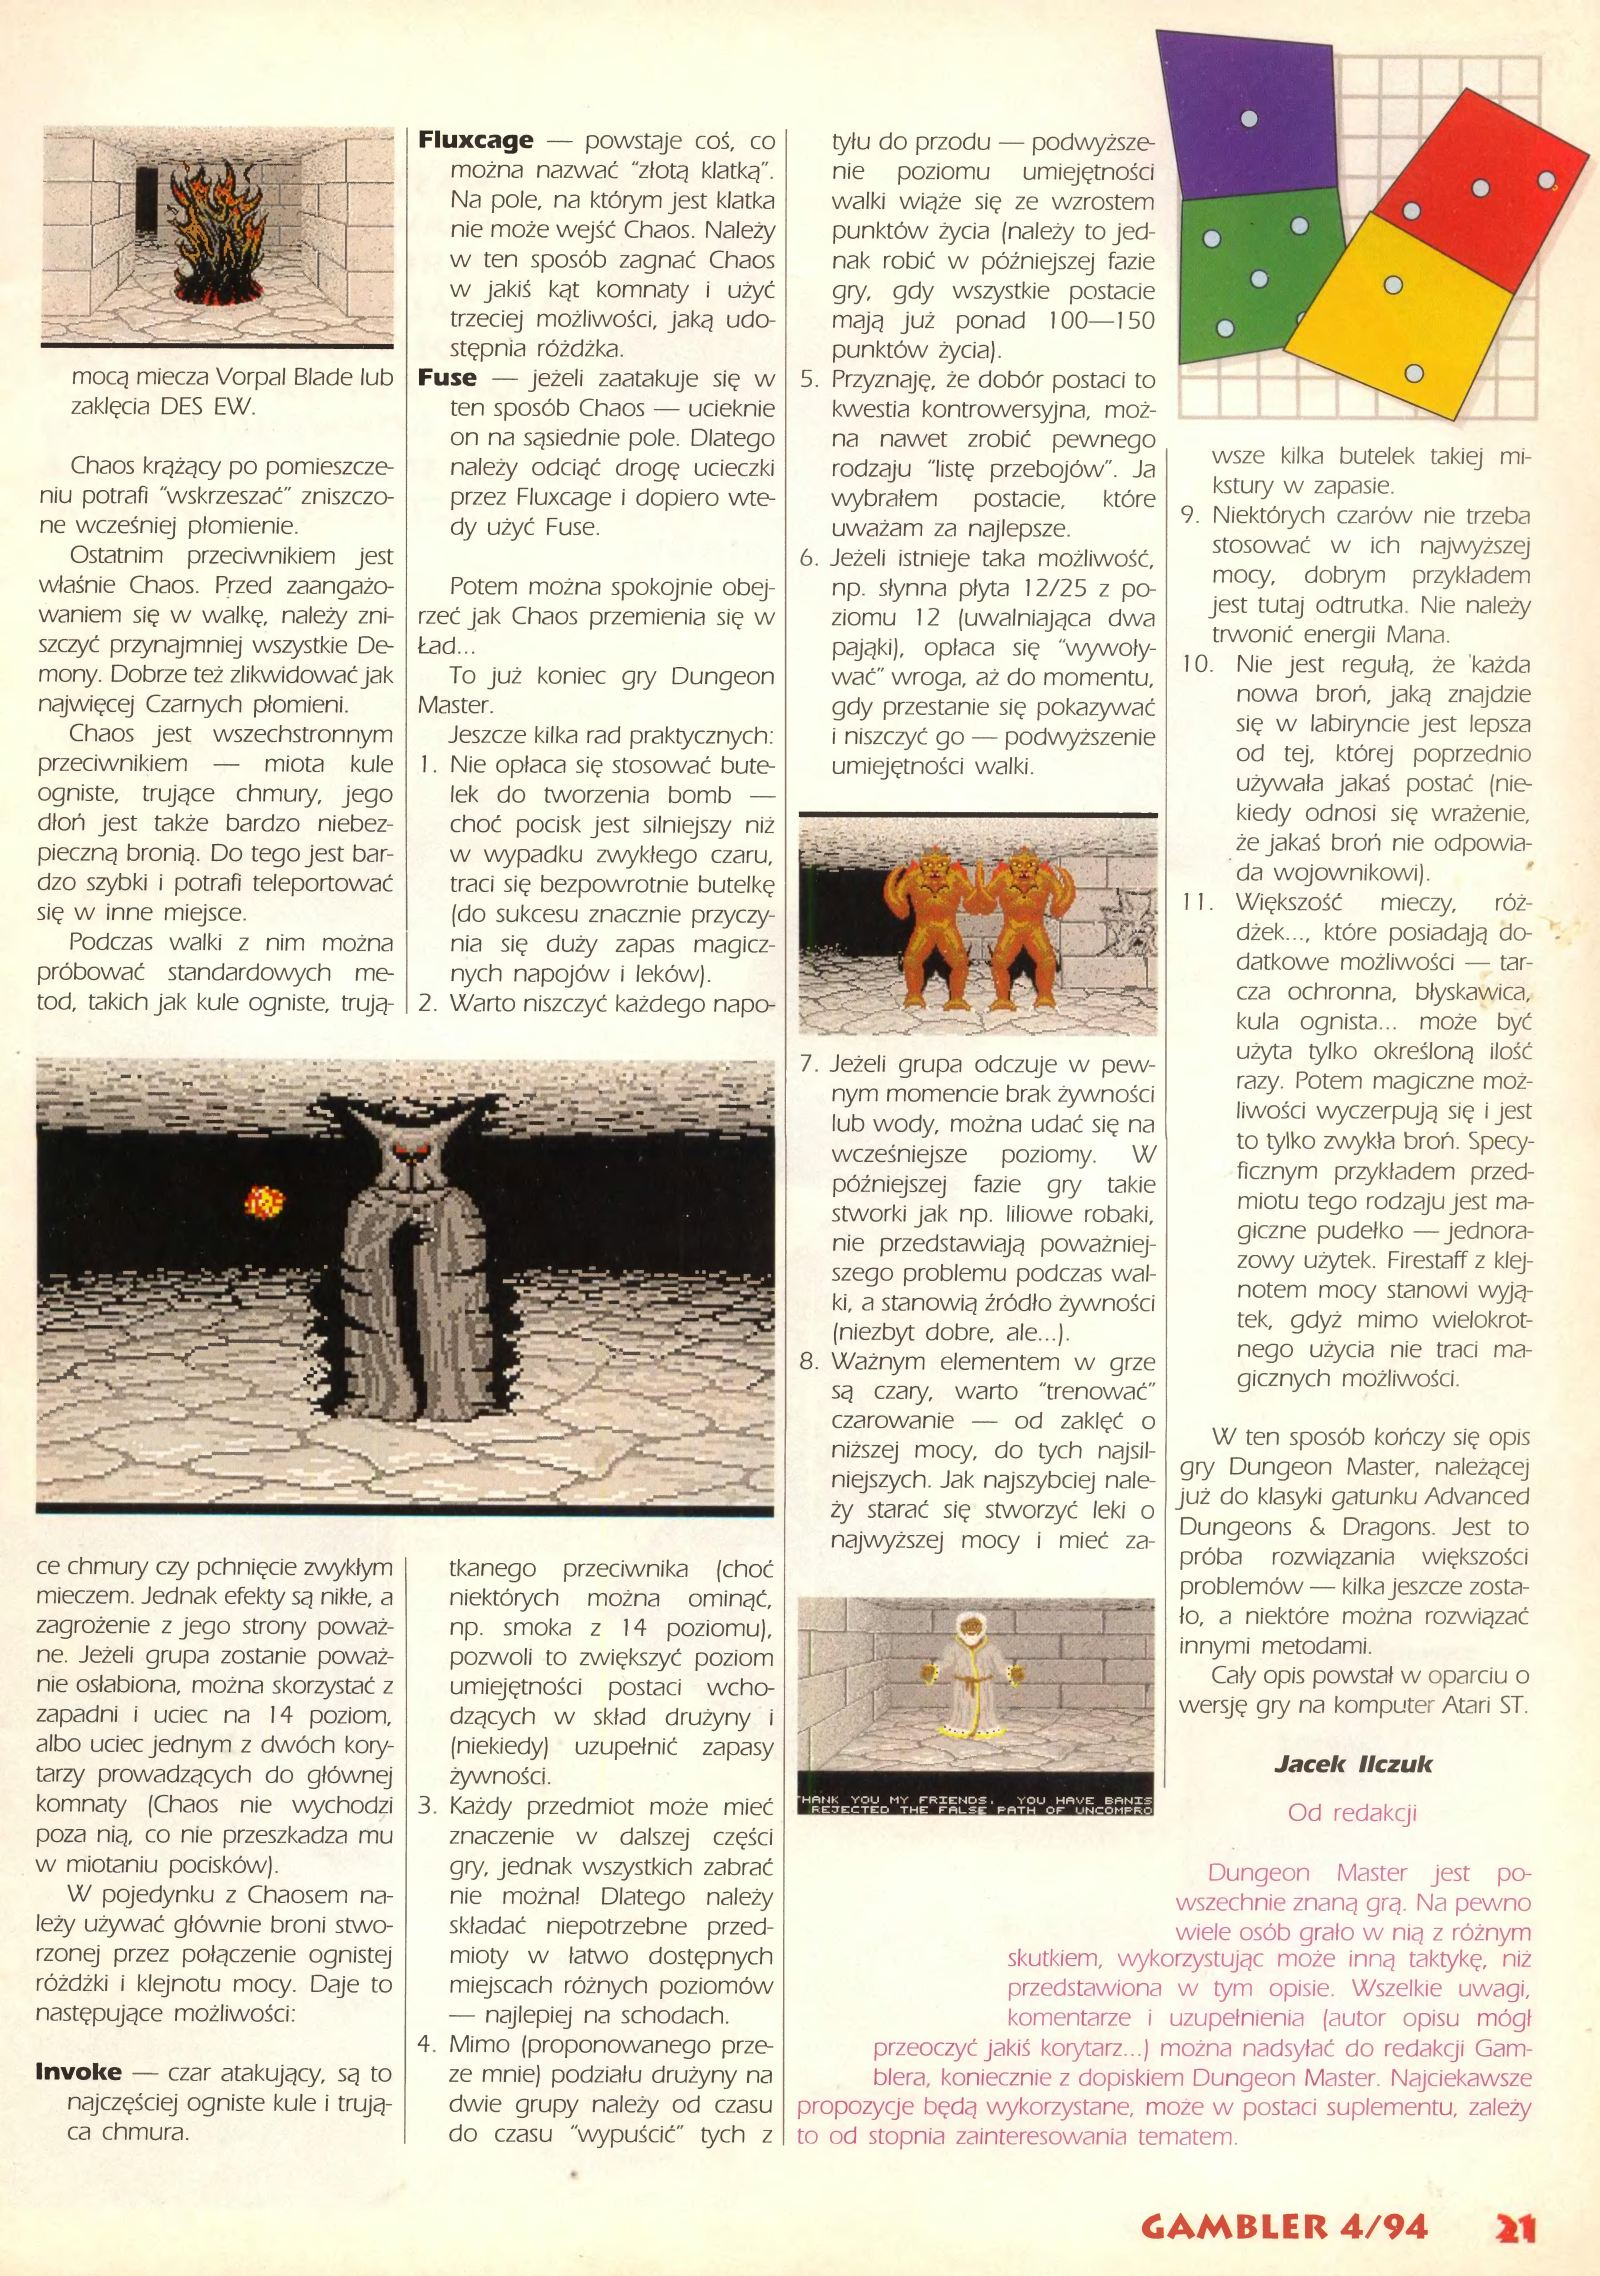 Dungeon Master Guide published in Polish magazine 'Gambler', April 1994, Page 21